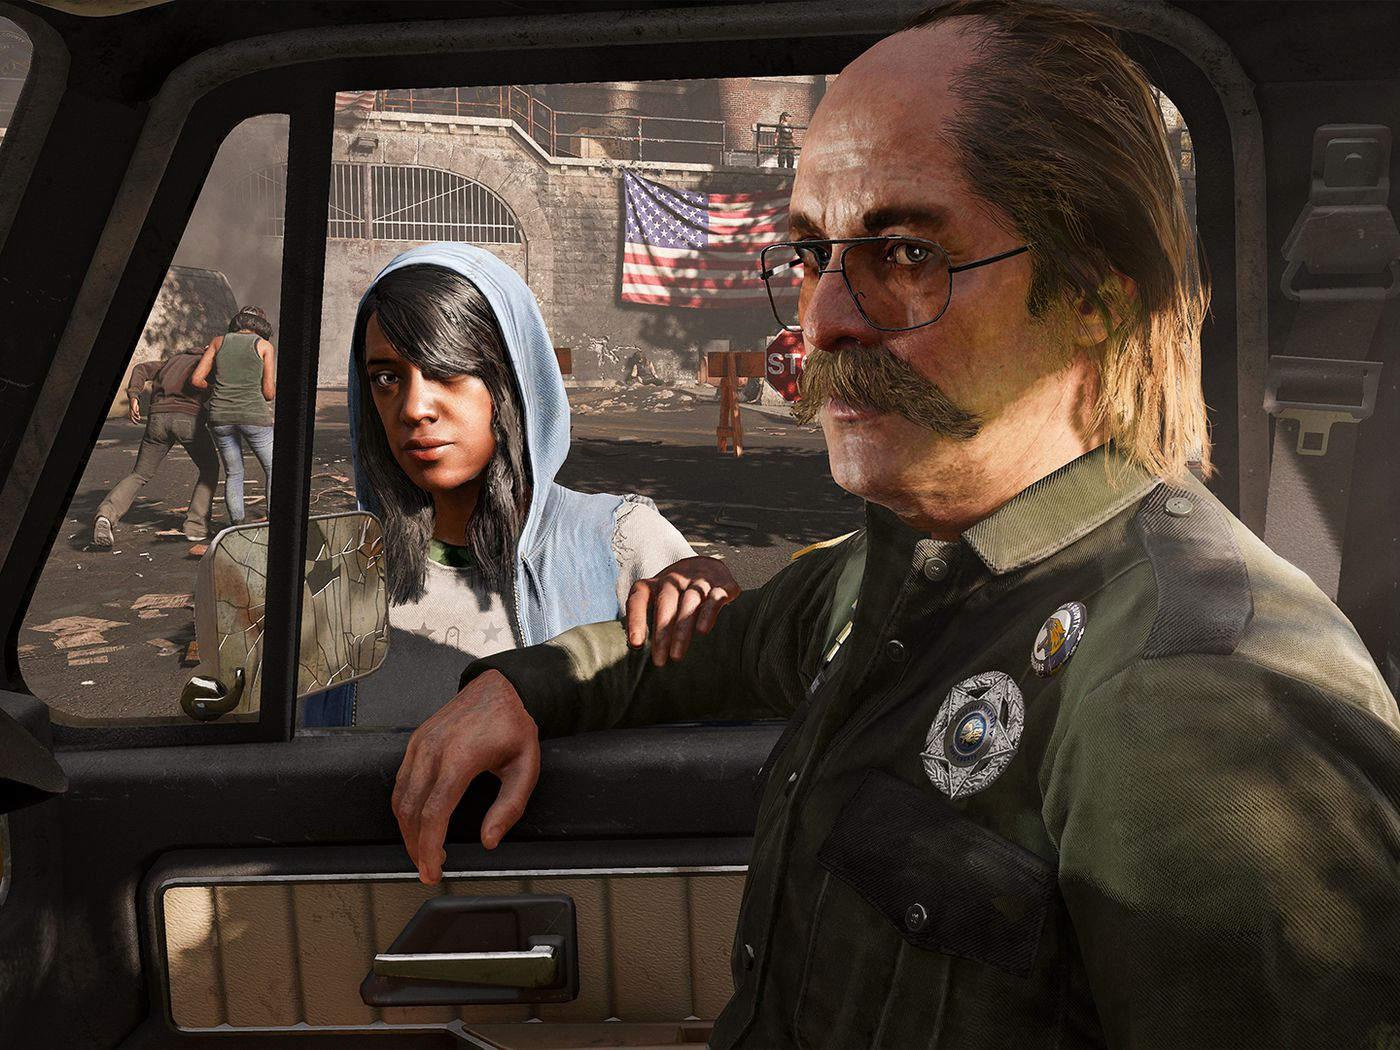 Far Cry 5 Review A Limp Attempt At Politics Ruins The Fun The Verge